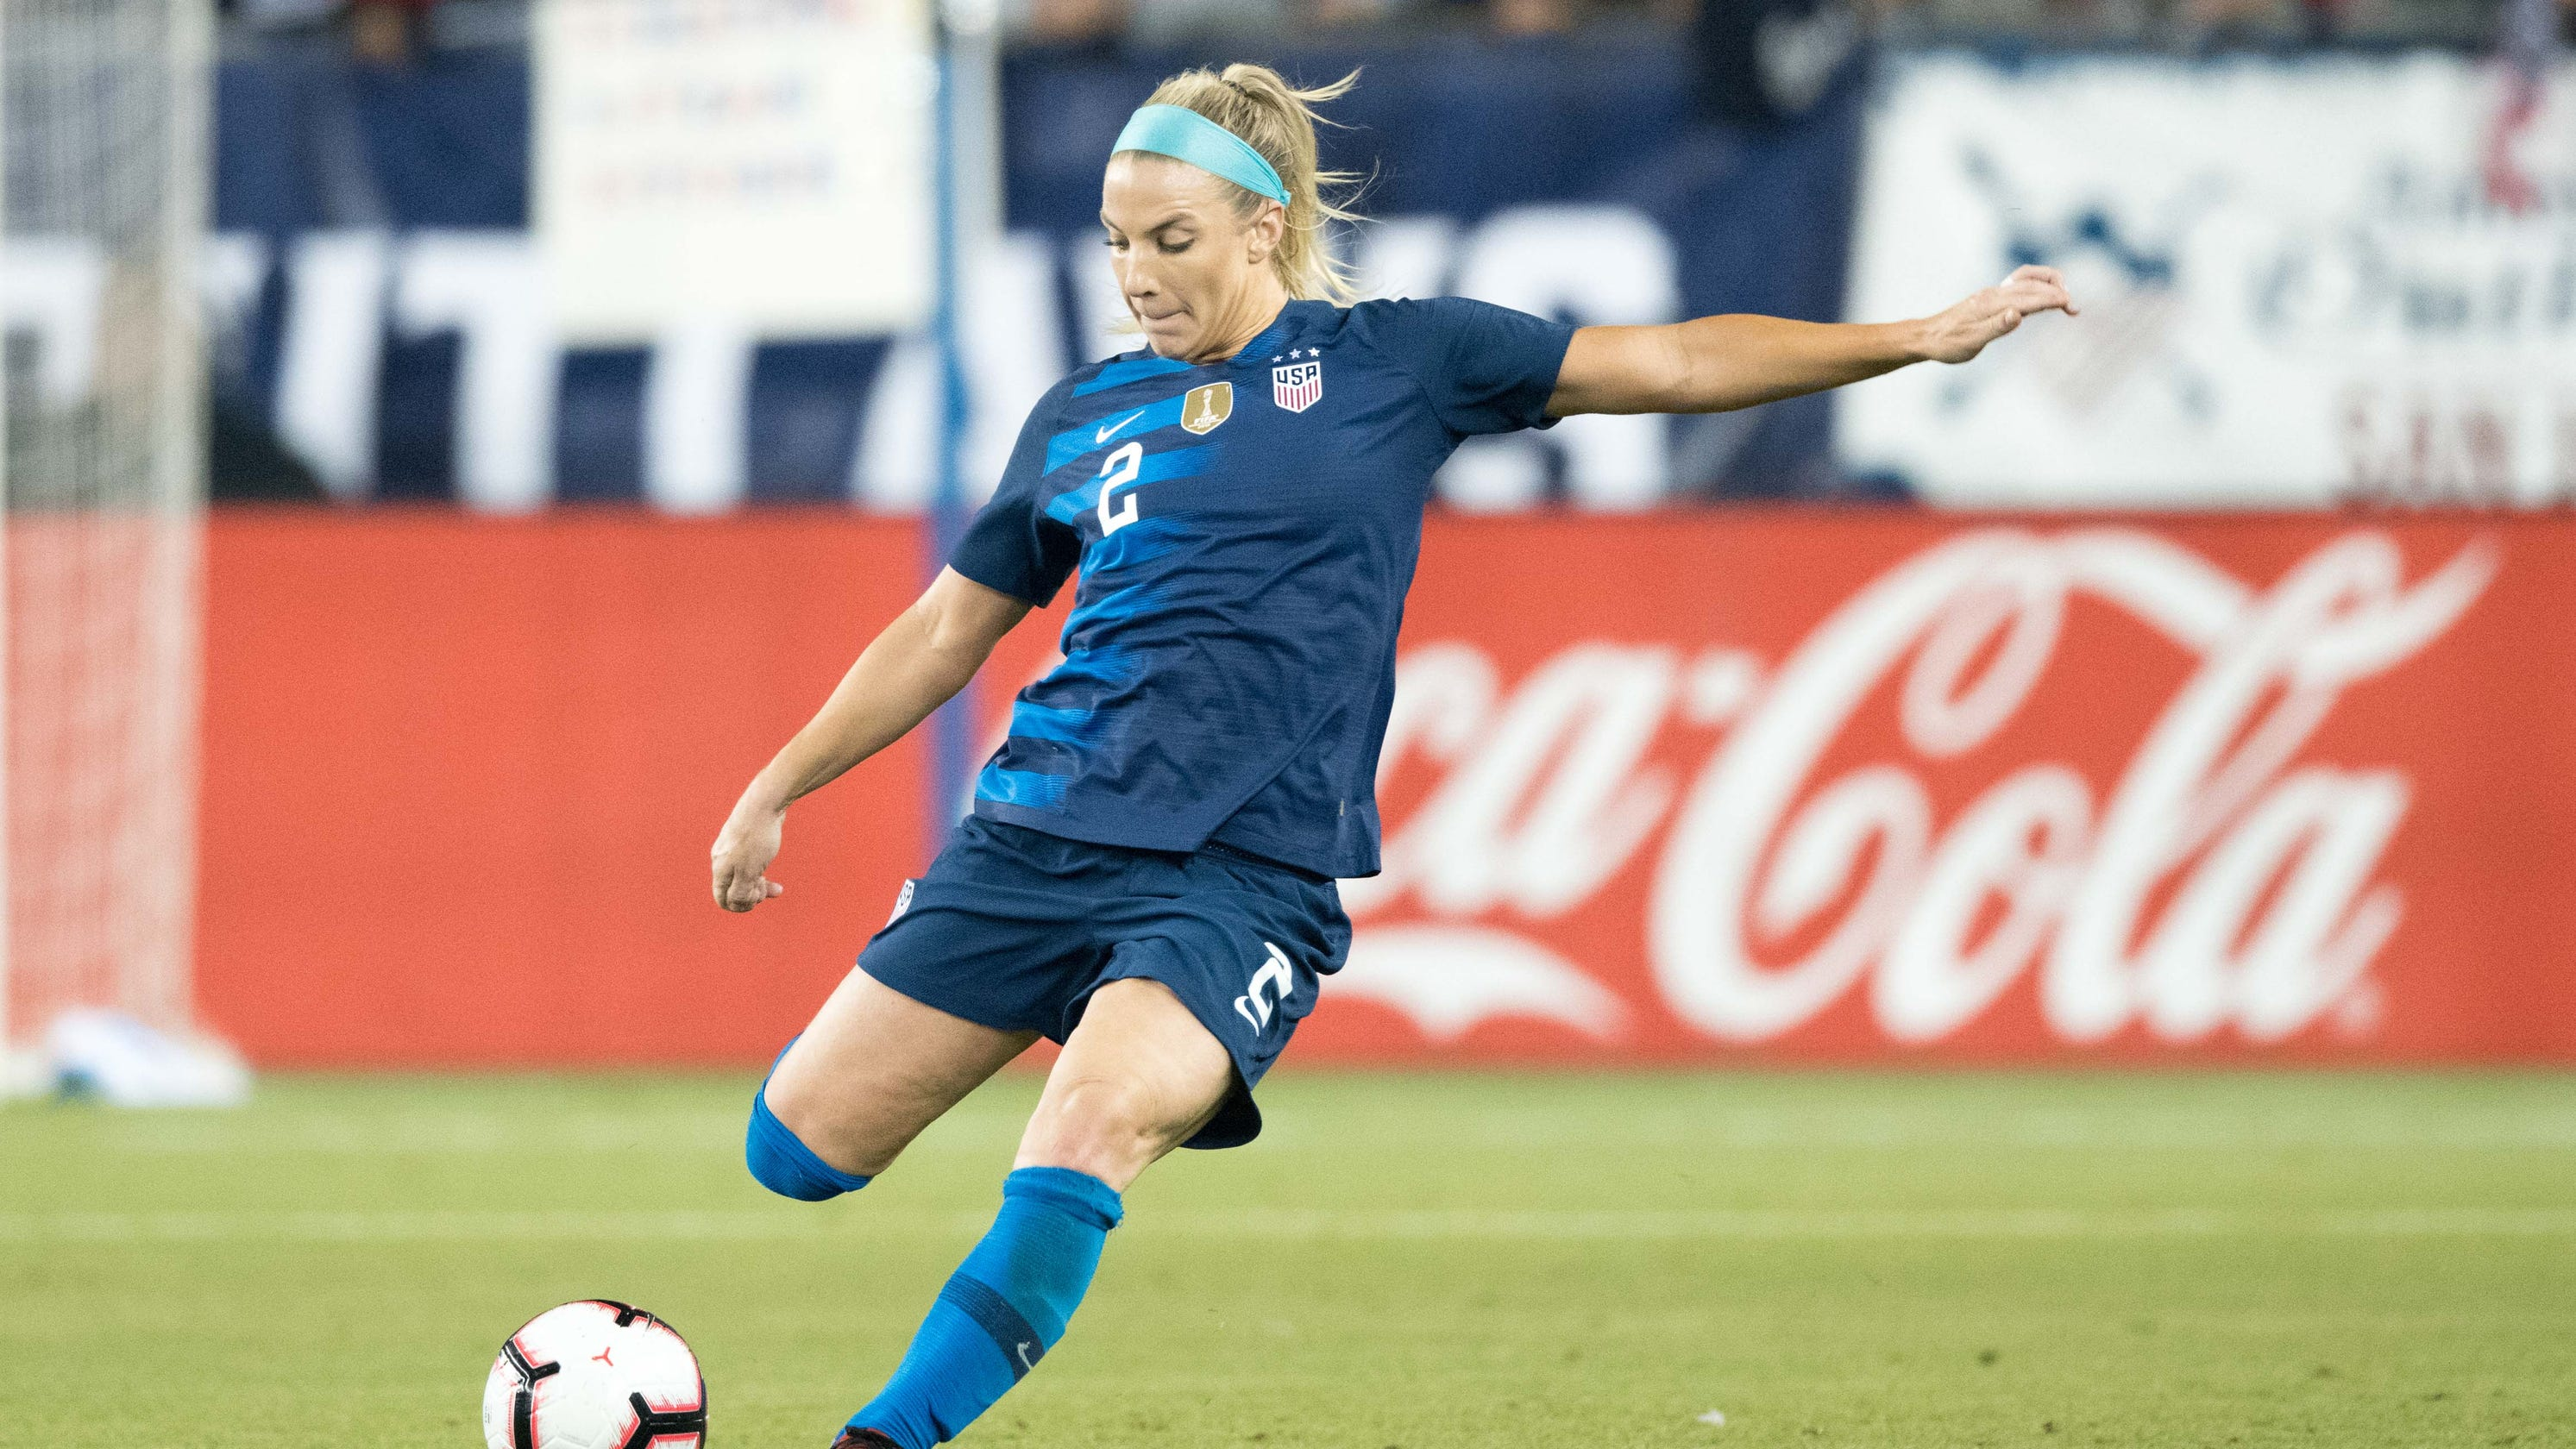 81bad883a33 Beyond belief: Mesa's Julie Ertz gears up to lead USWNT in SheBelieves Cup,  2019 campaign. U.S. women's national team ...